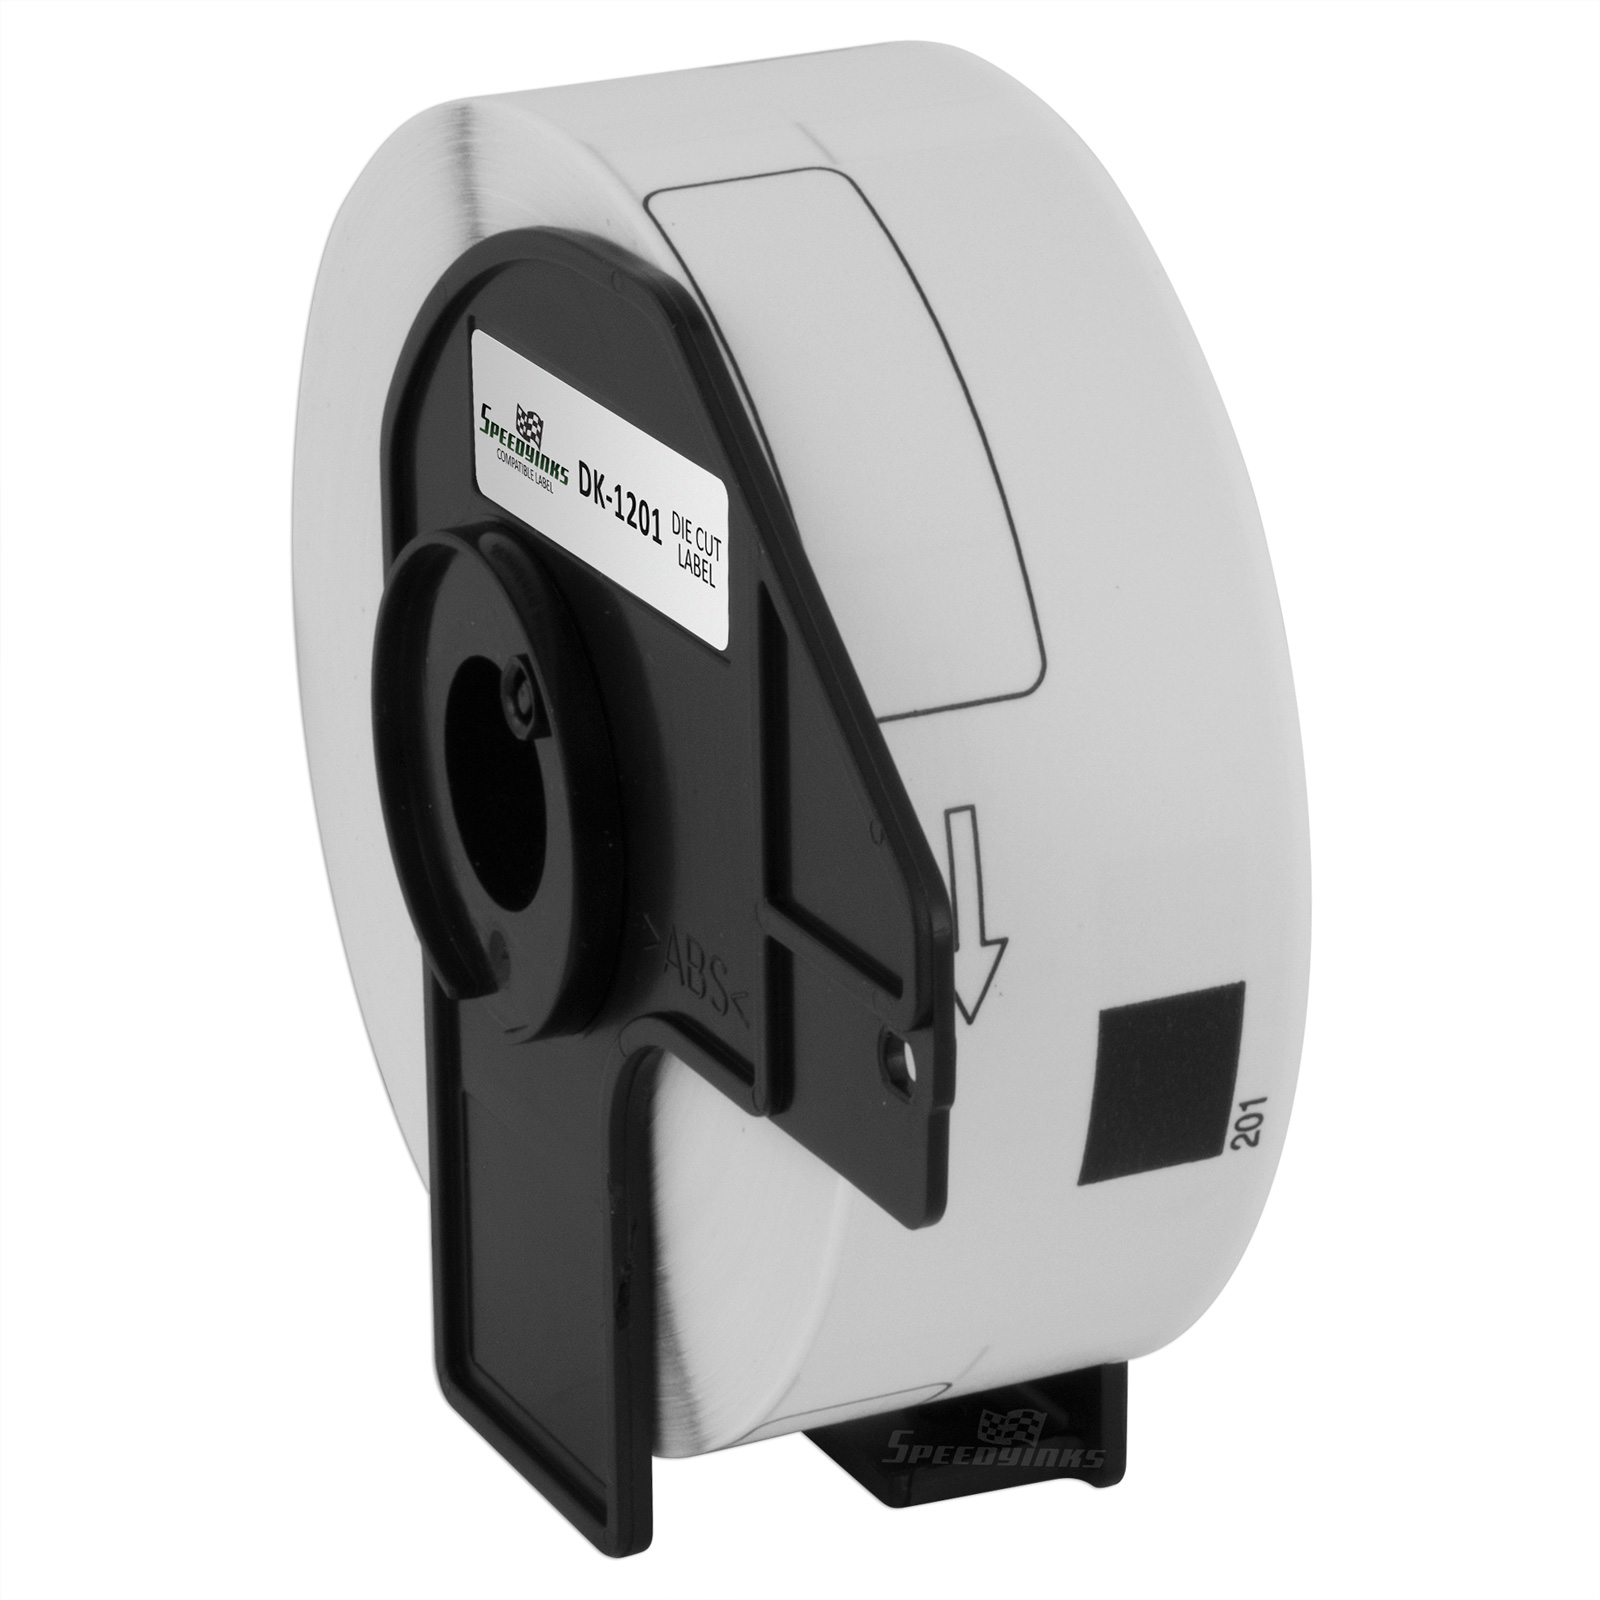 Speedy Inks Compatible Address Label Replacement for Brother DK-1201 | 1.1 in x 3.5 in 29 mm x 90.3mm (White)